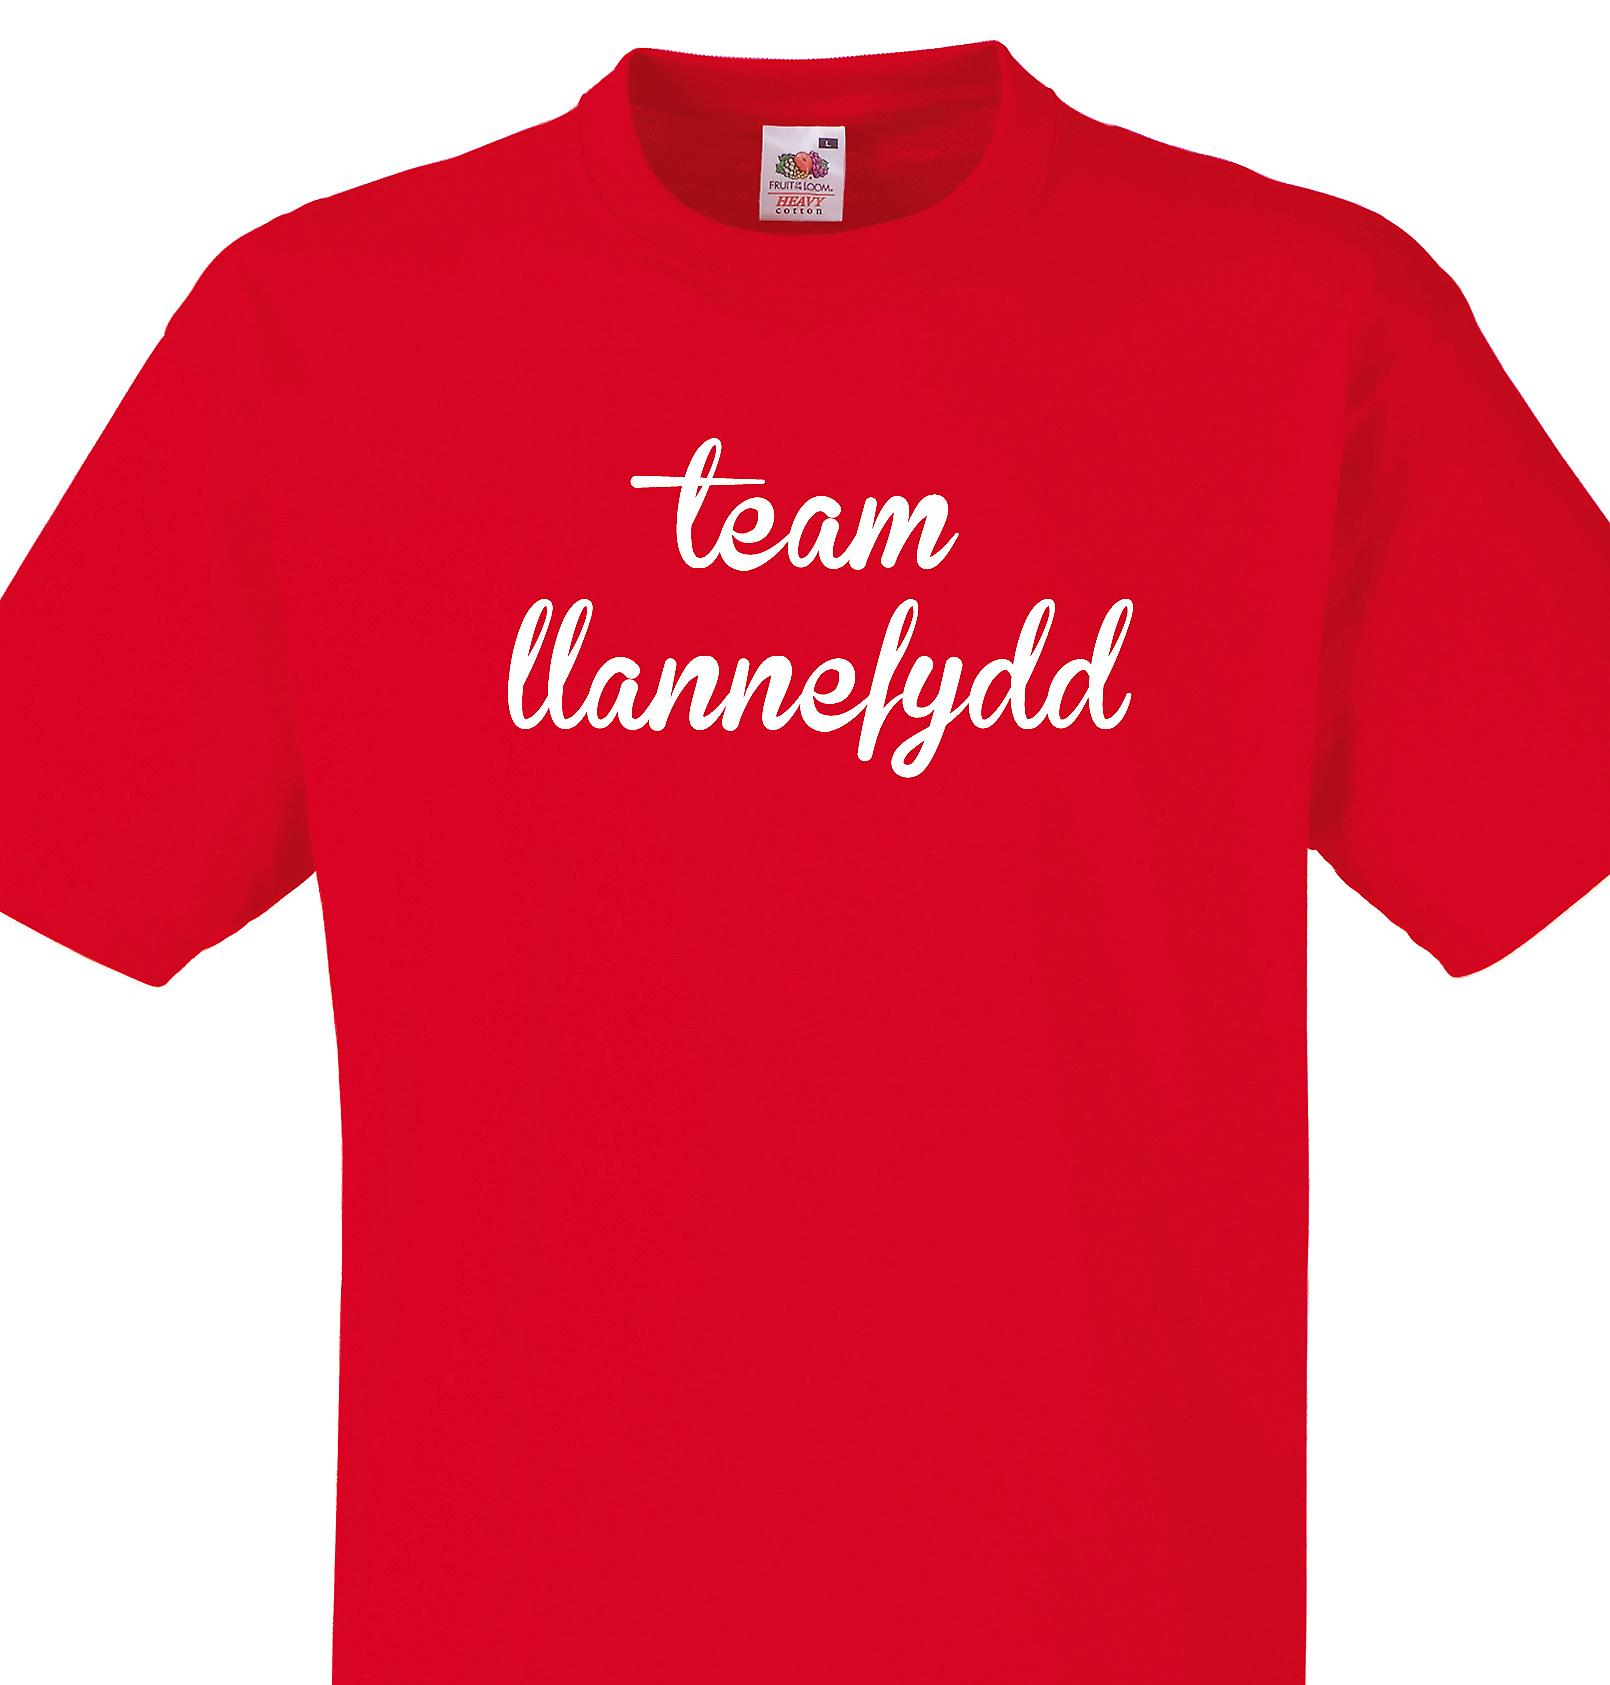 Team Llannefydd Red T shirt